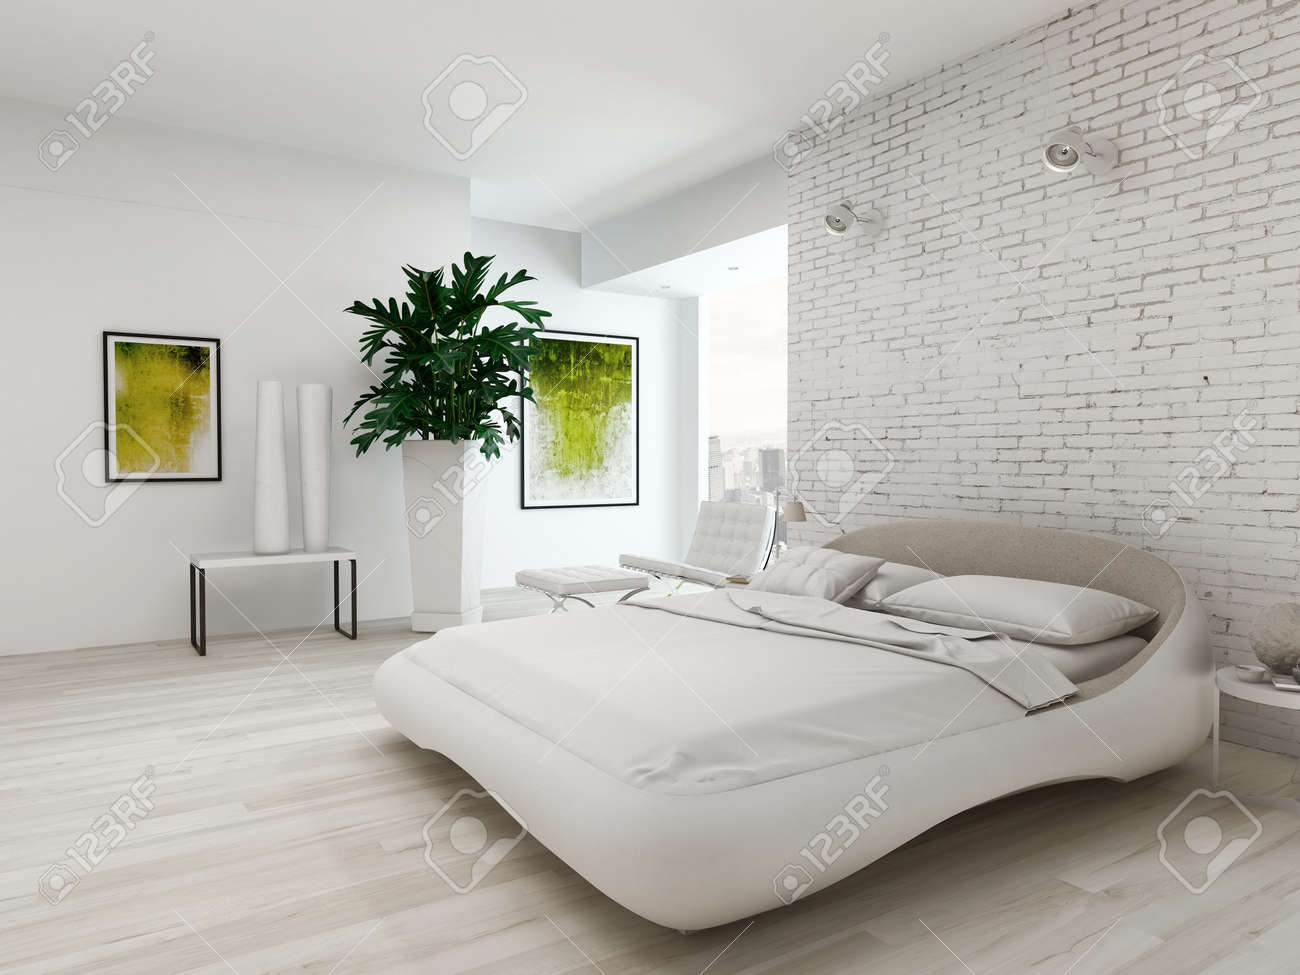 nice bedroom interior with white king-size bed in front of brick